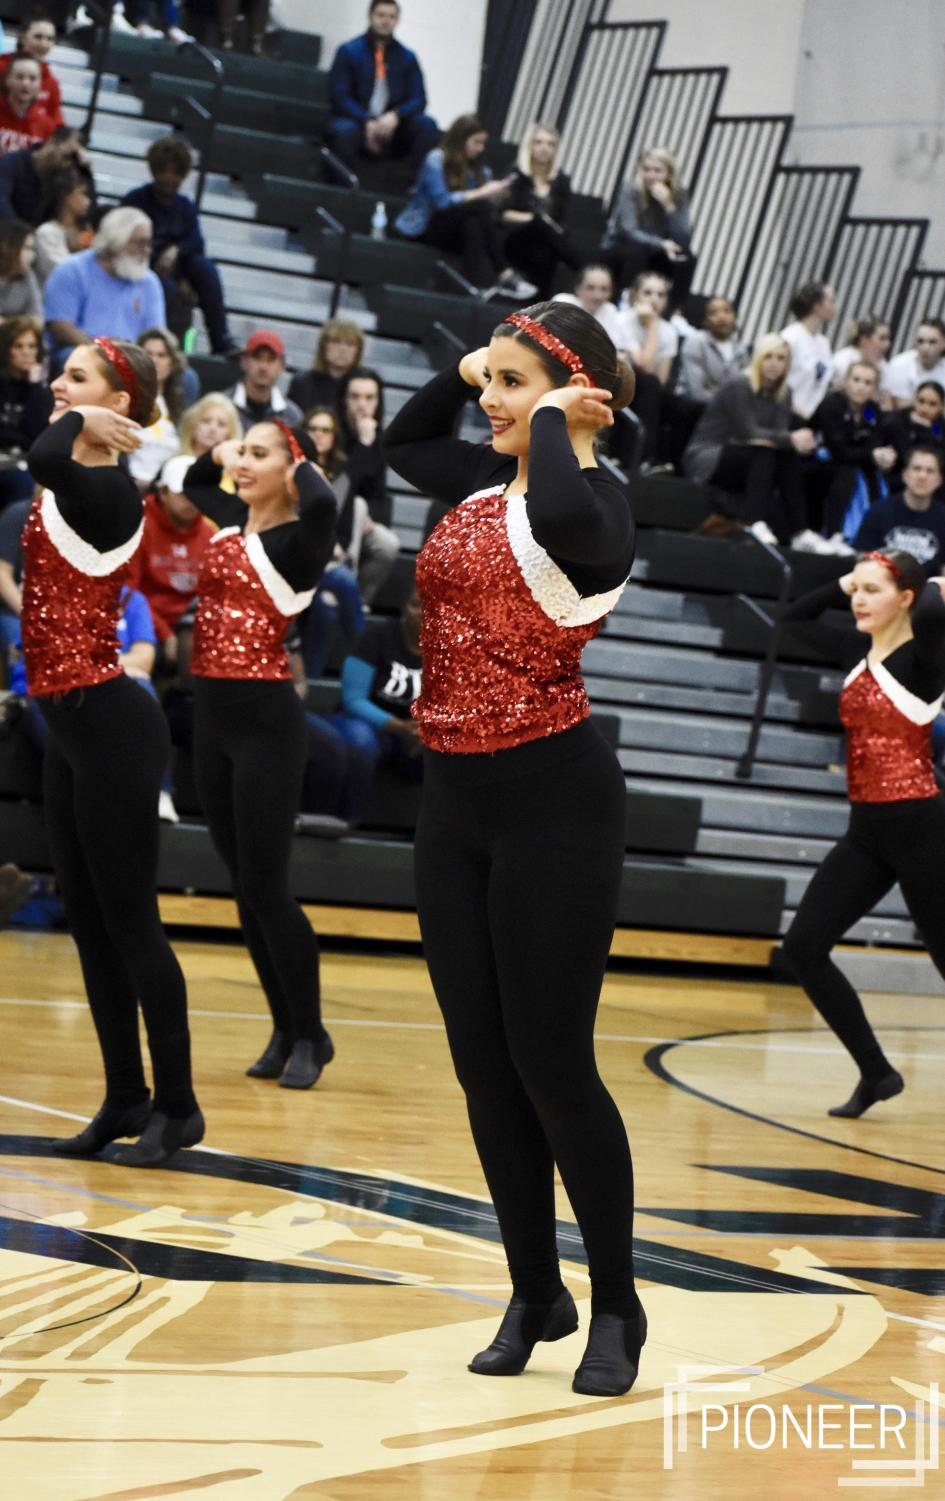 +Performing+at+a+dance+competition%2C+Sara+Mattingly%2C+junior%2C+smiles+at+the+crowd+Dec.+1.%0A%0A